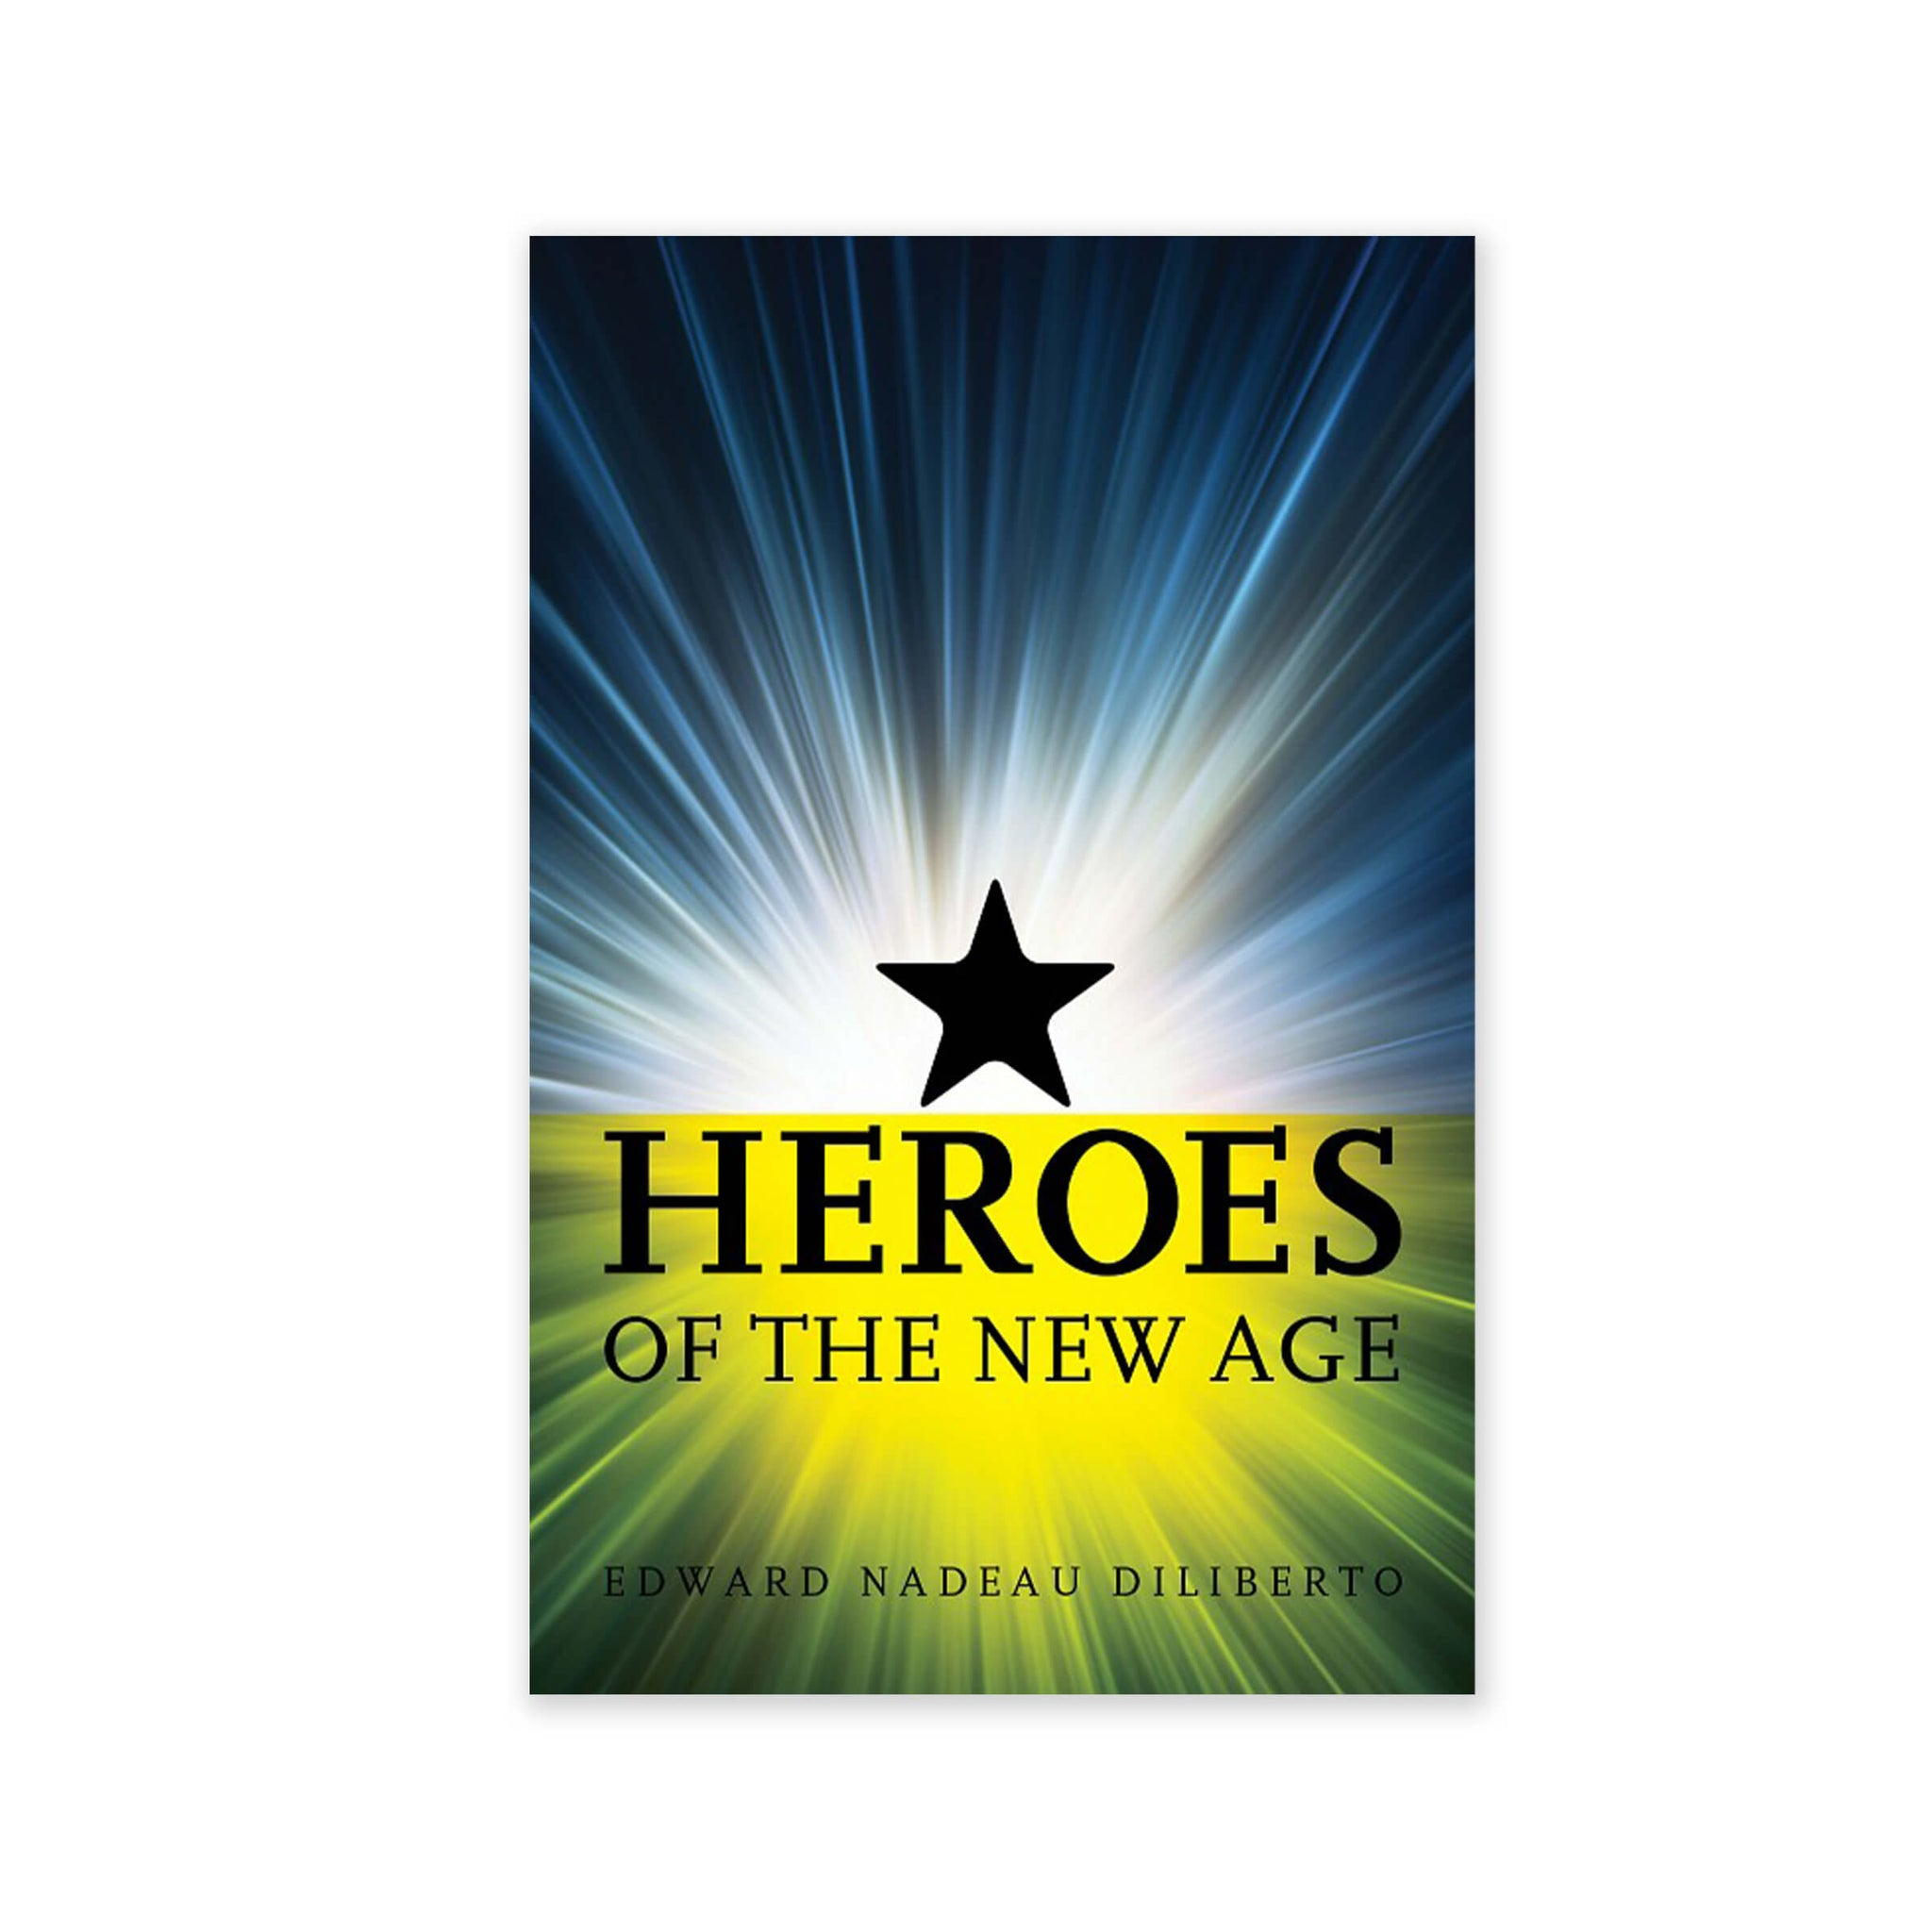 Heroes of the New Age - Stories of Some Early Babis Vibrantly Retold